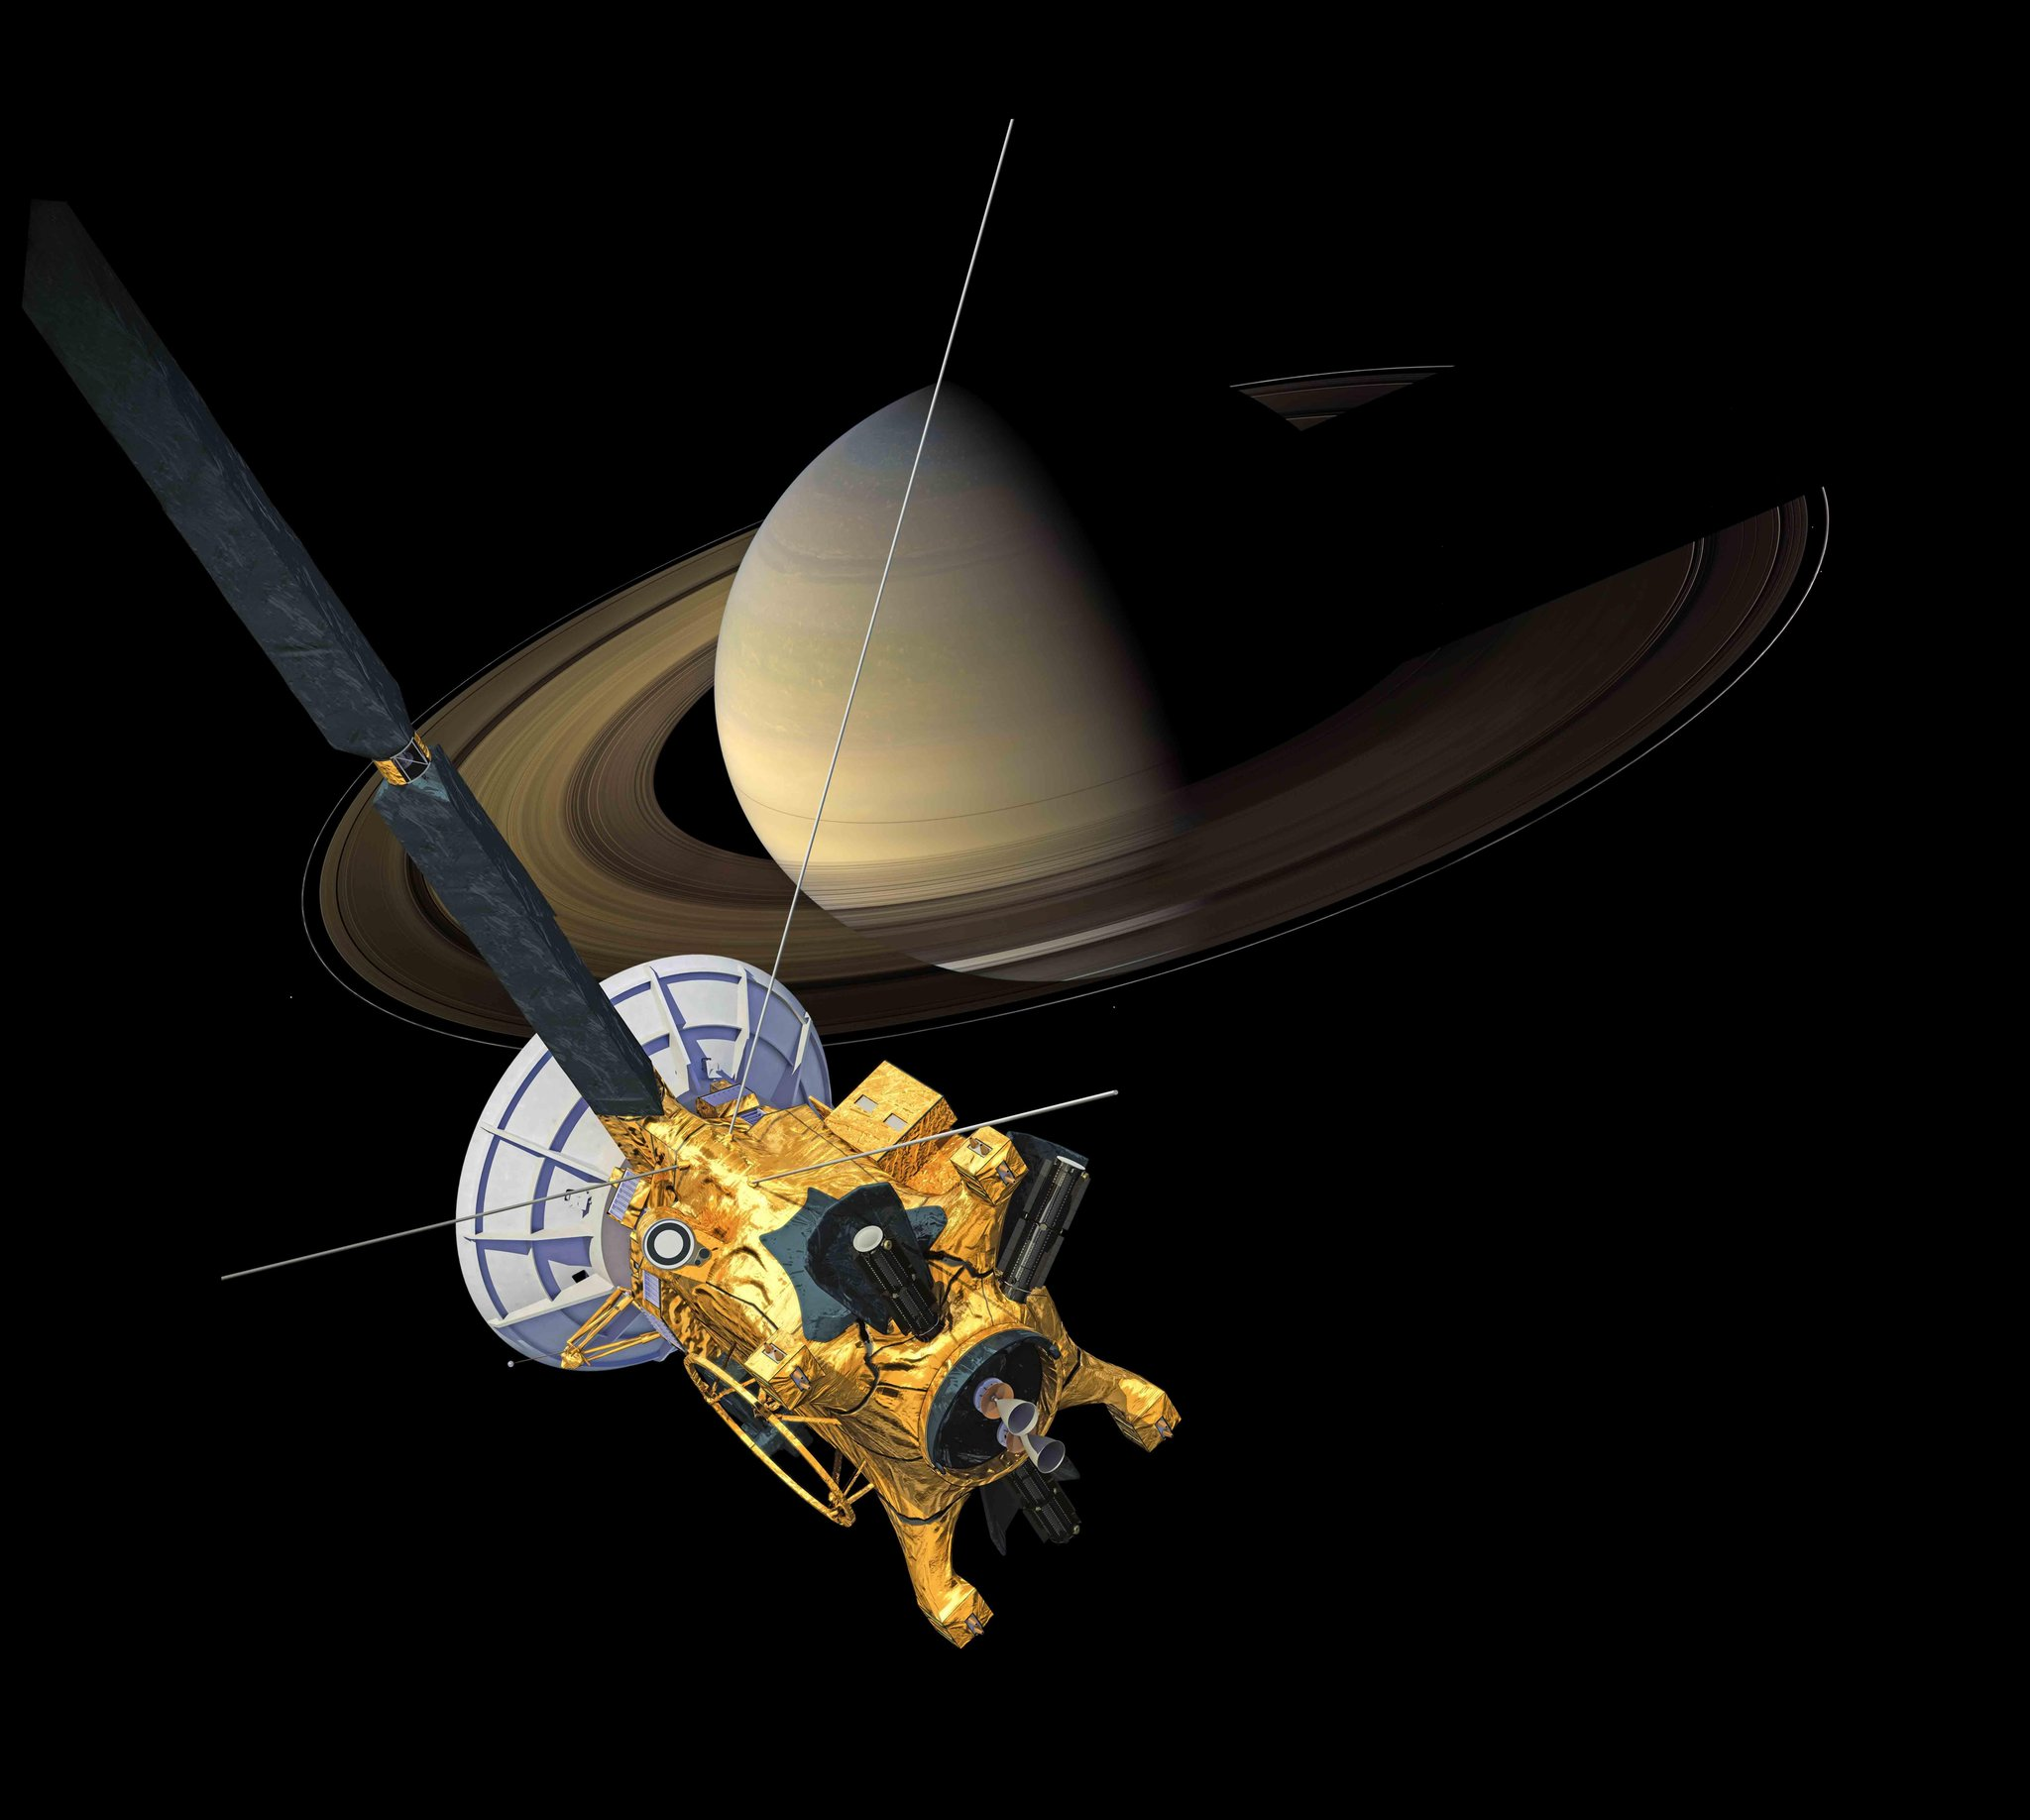 On the 9th day of Christmas, NASA History gave to me 9 years orbiting Saturn. (Thanks @CassiniSaturn )    http://t.co/SlDapmgBW2